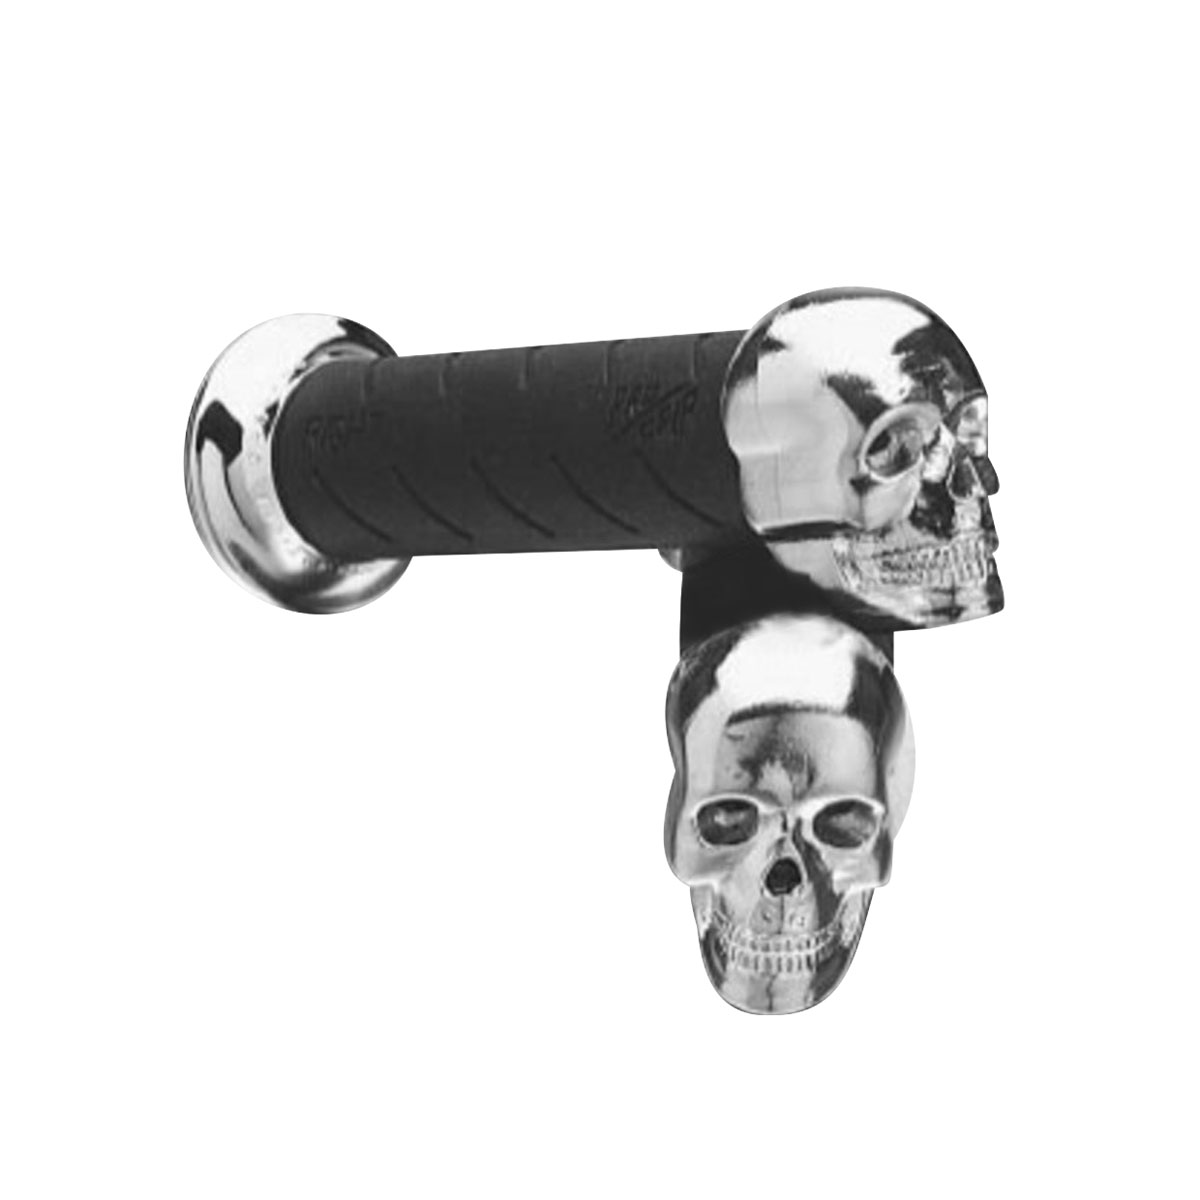 Pro-Grip Damping Grips with Skull End Caps